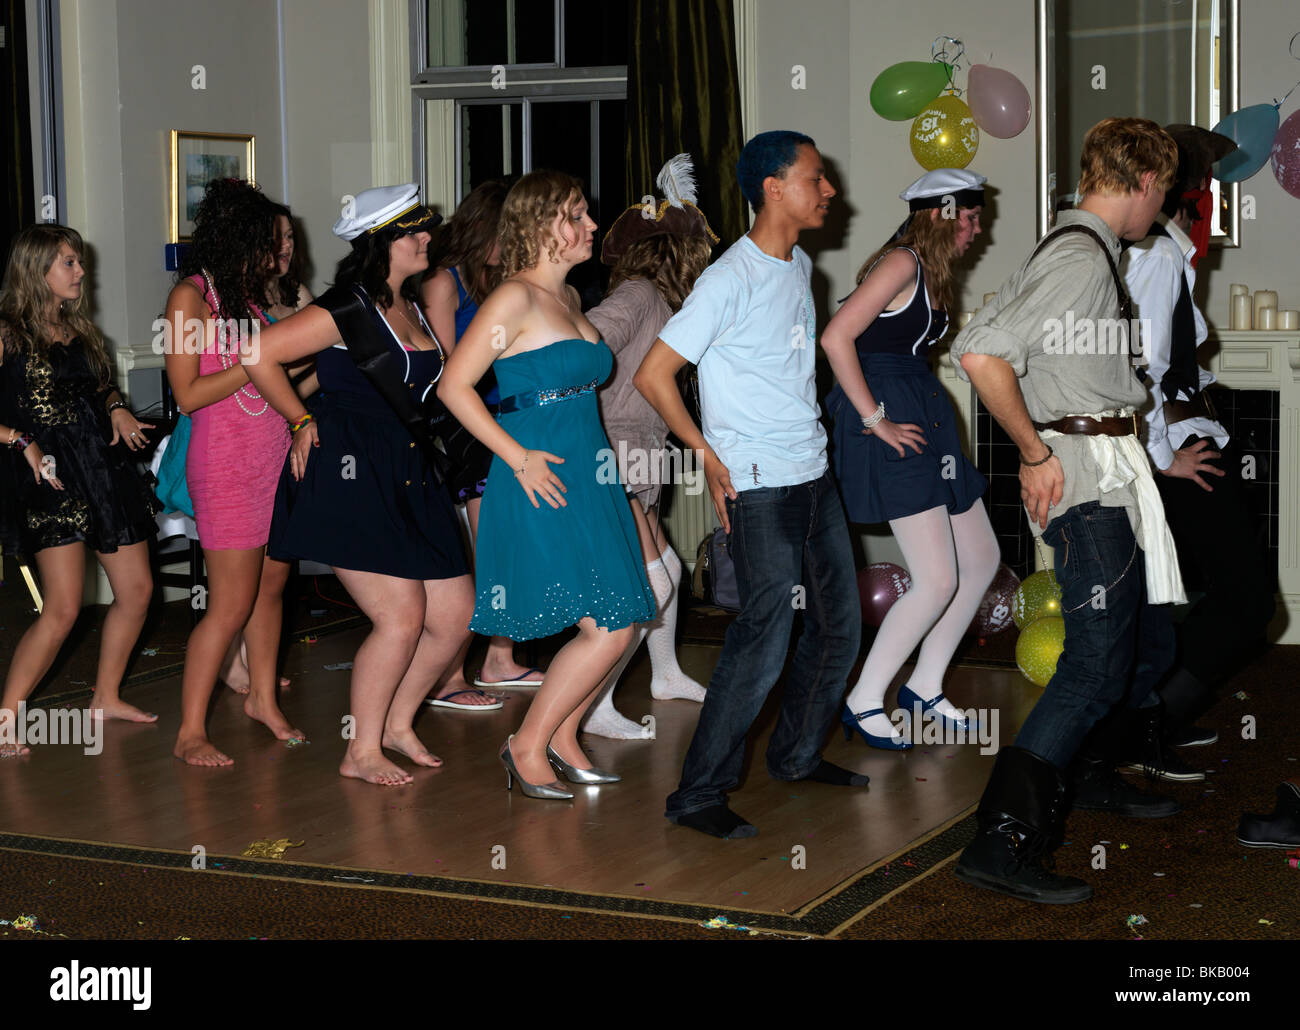 Eighteenth Birthday Party Teenagers In Fancy Dress Pirates And Sailors Dancing - Stock Image